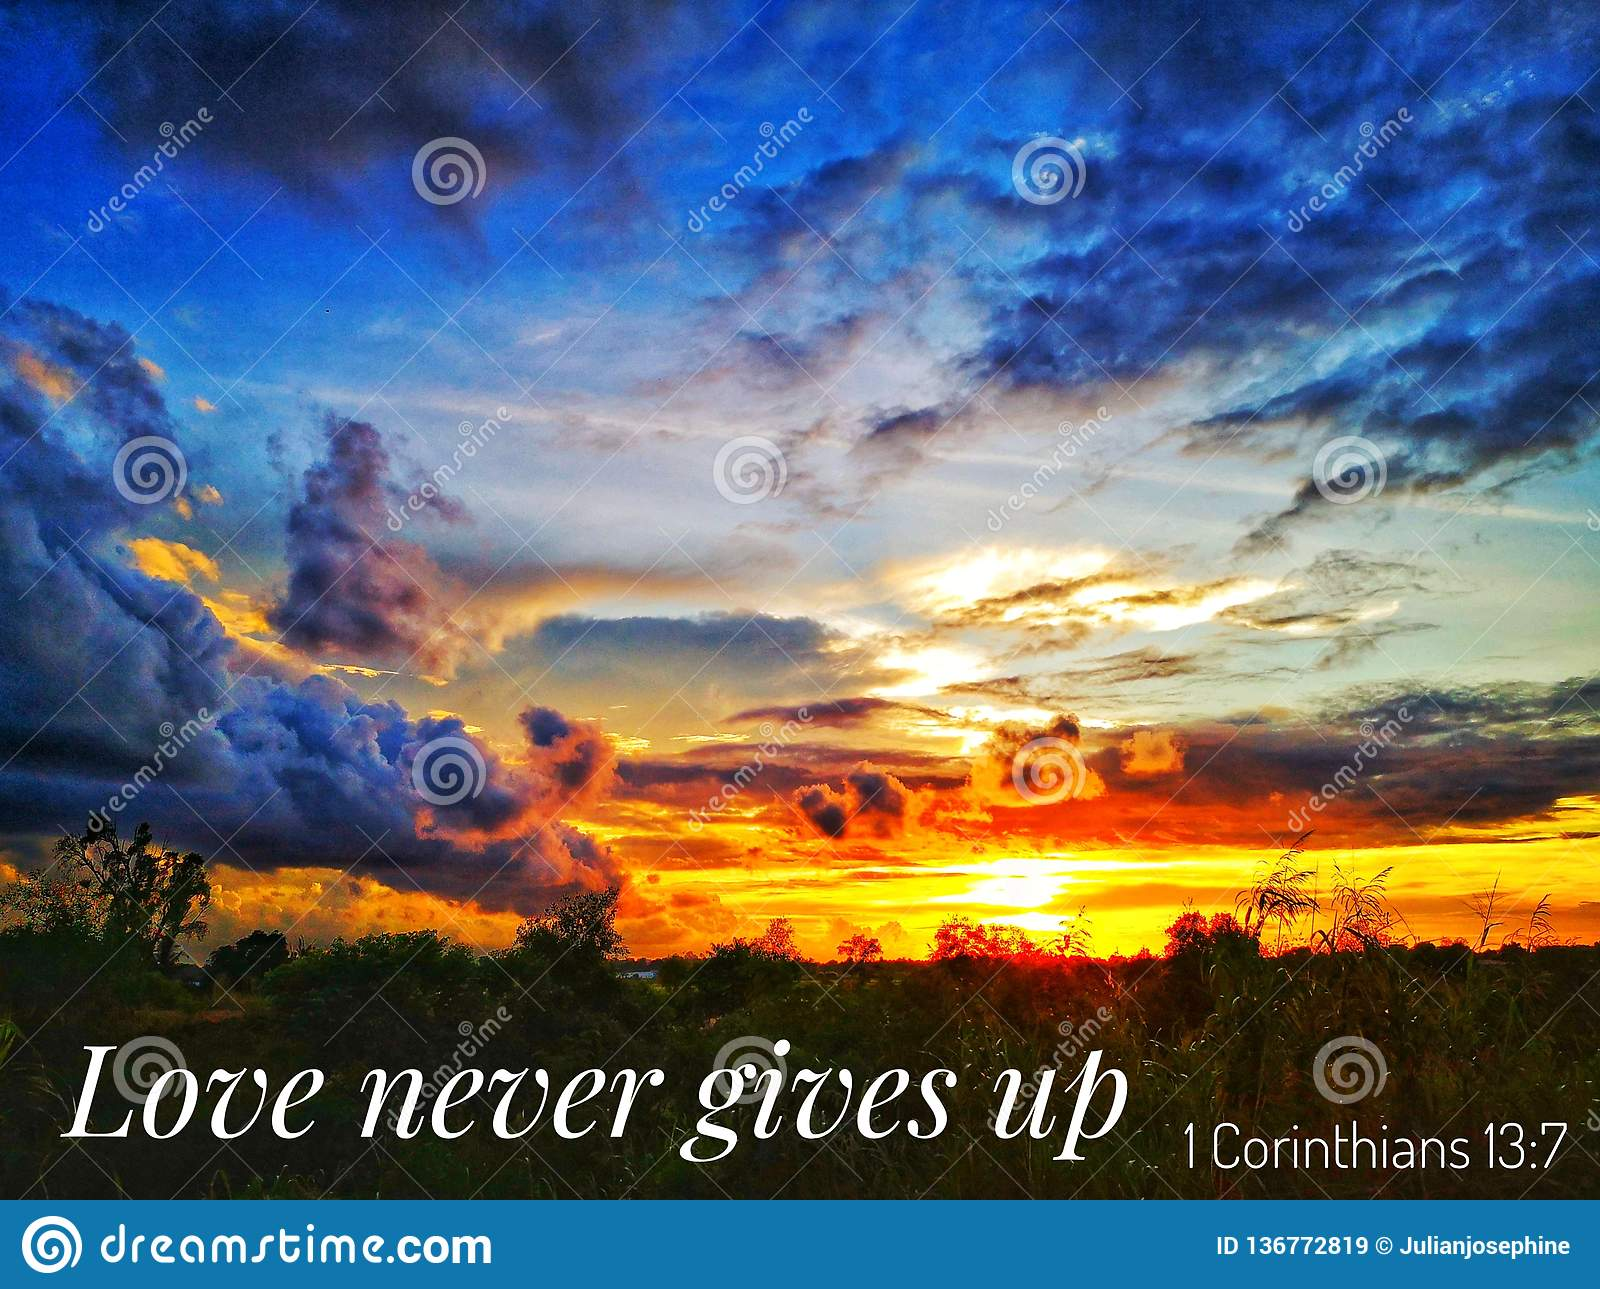 read-inspirational-bible-verses-quotes-will-encourage-uplift-you-love-never-gives-up-sunset-background-136772819